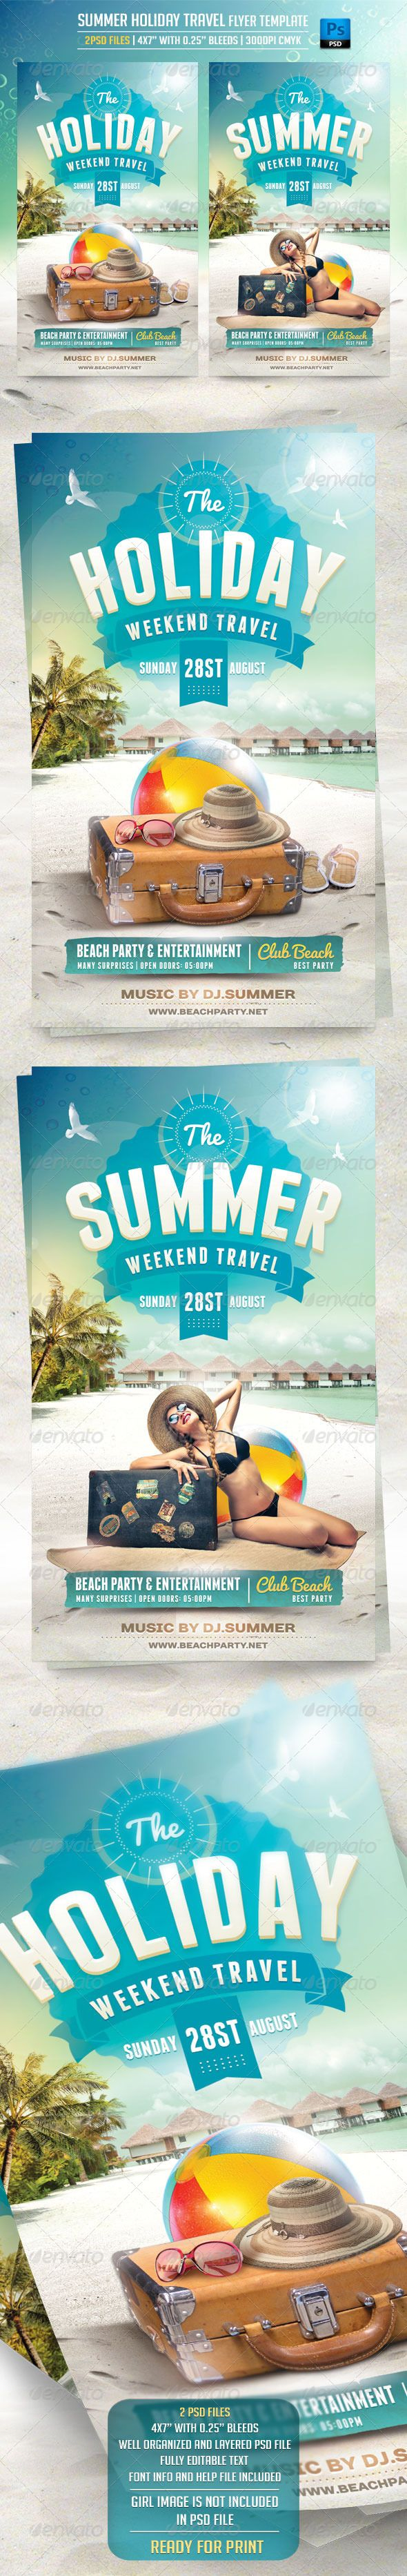 , Summer Holiday Travel Flyer Template – Flyers Print Templates, MySummer Combin Blog, MySummer Combin Blog